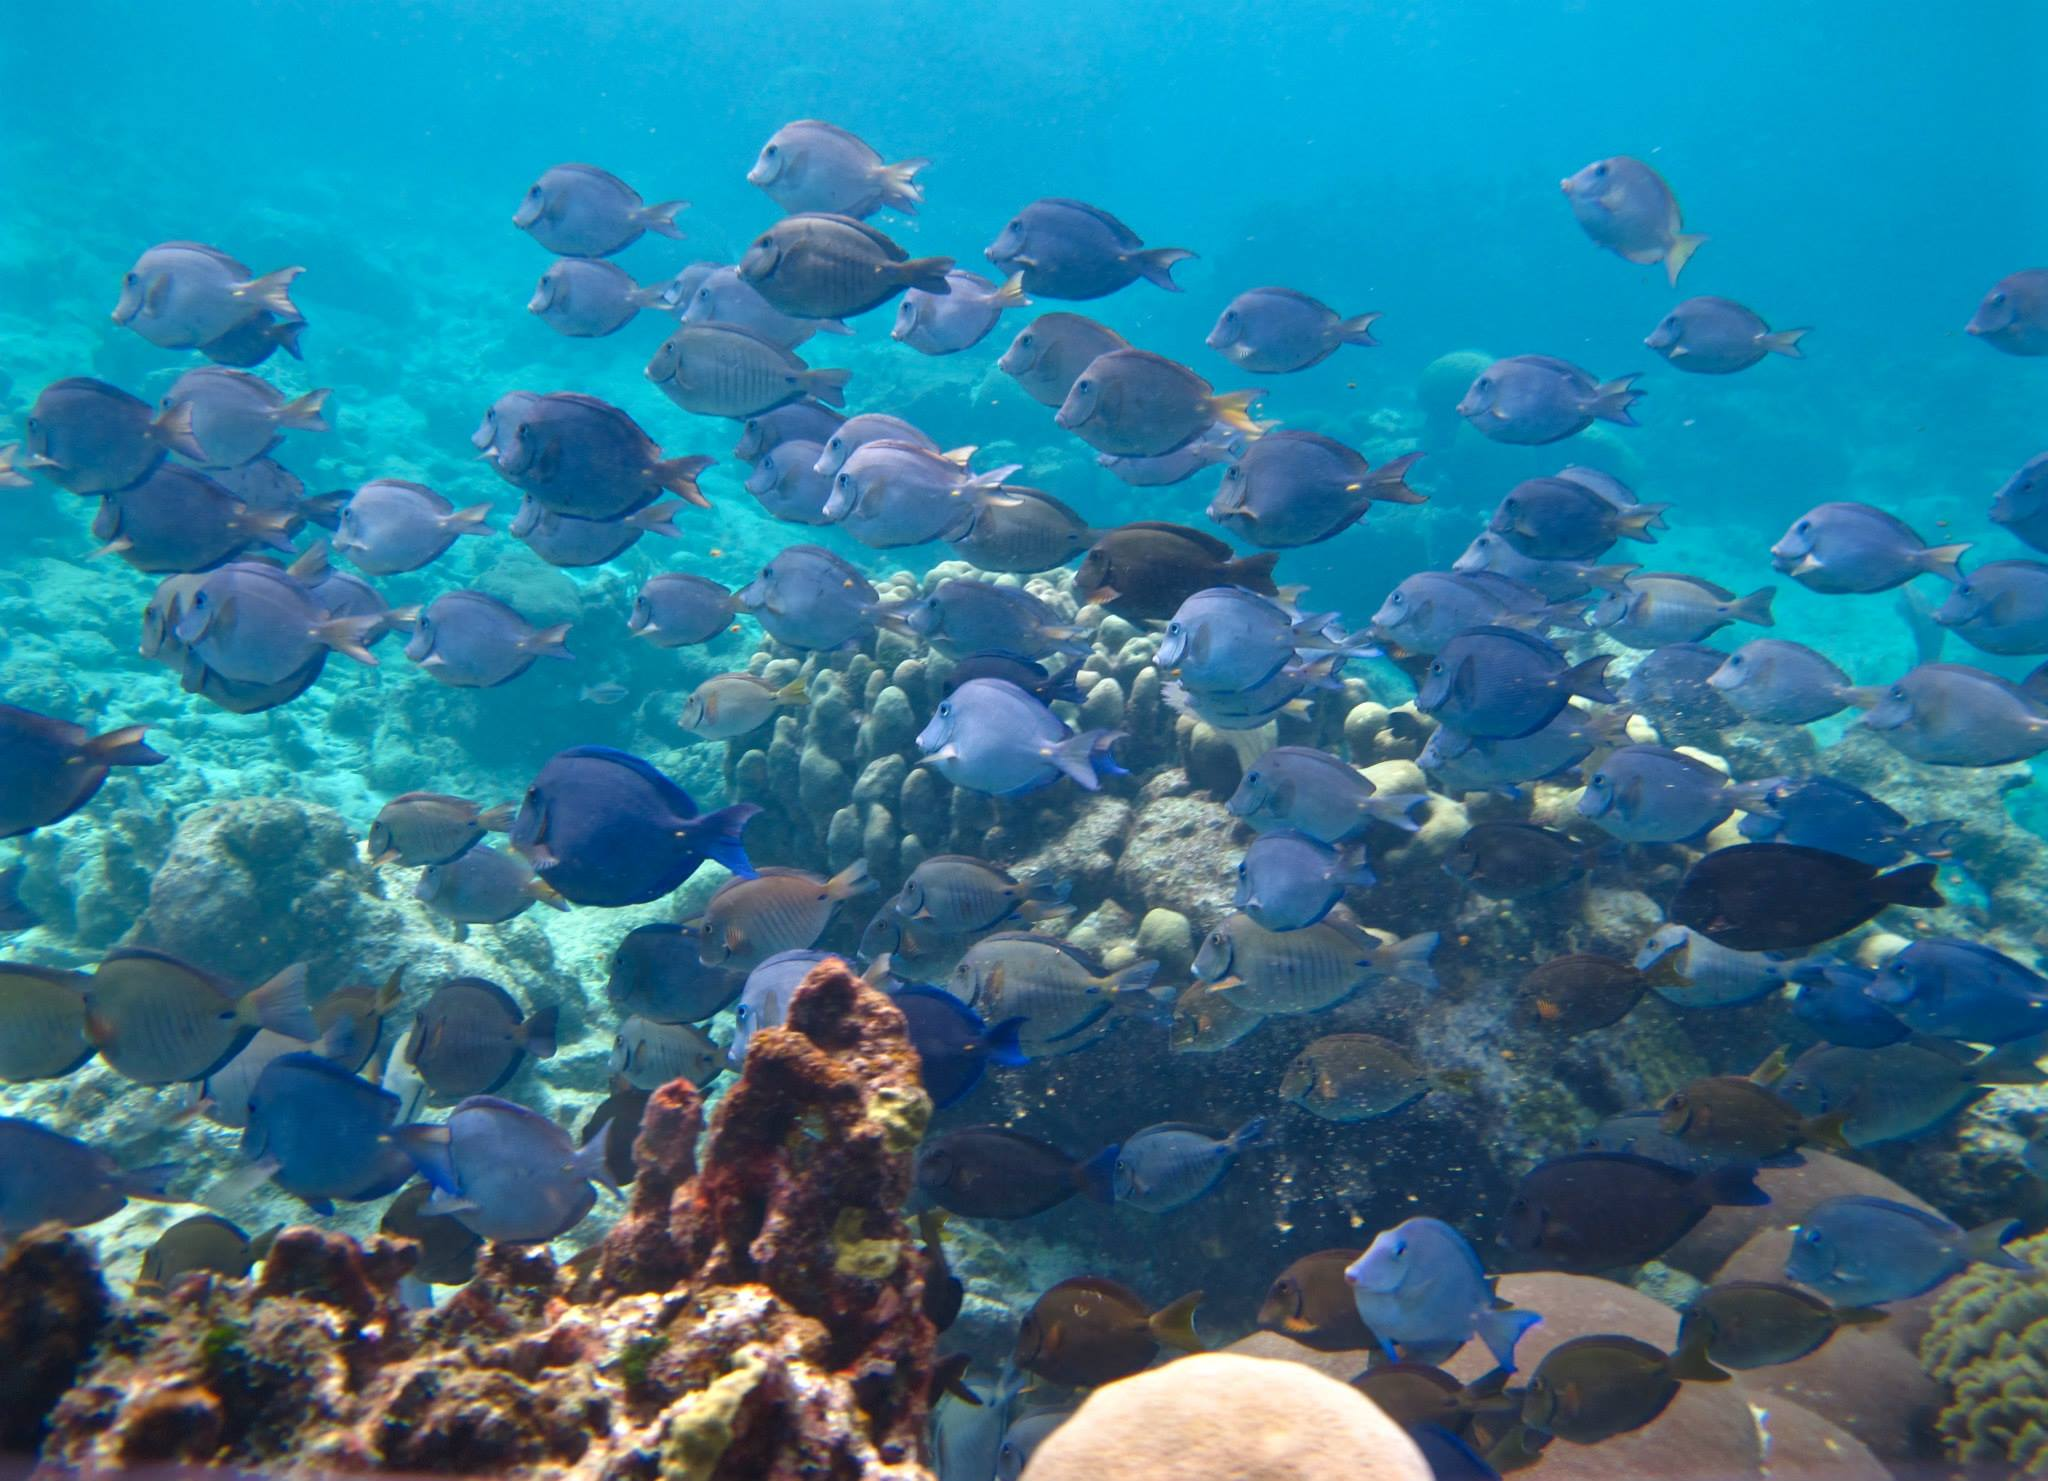 A mixed school of Caribbean surgeonfishes, key algal consumers on coral reefs.